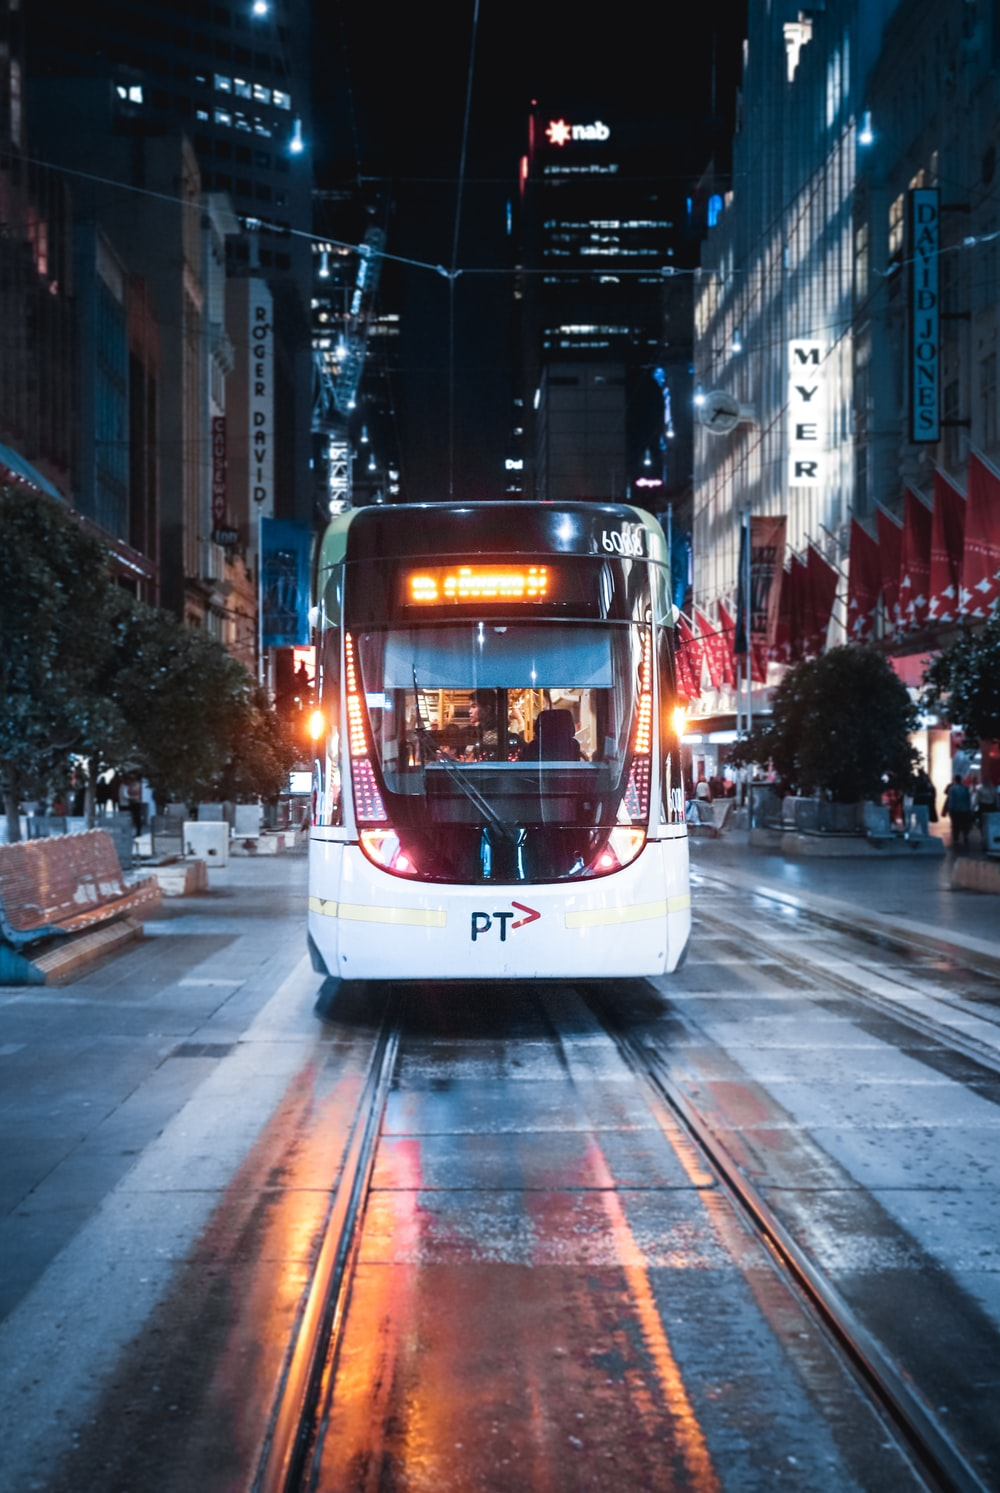 white and brown tram on road during night time